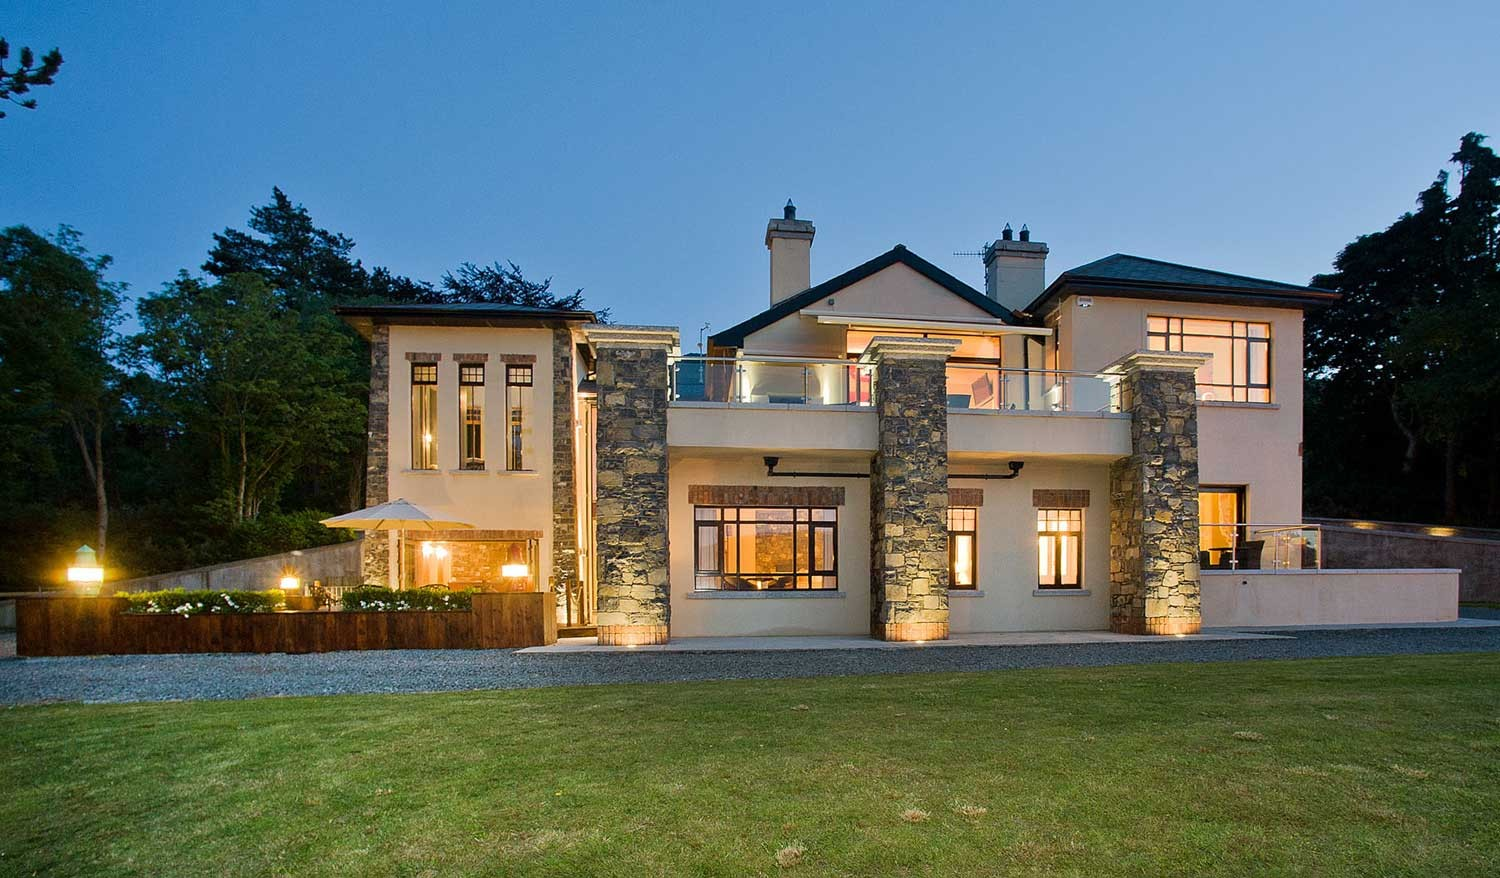 5-Star Lodge, Carlingford, Co. Louth